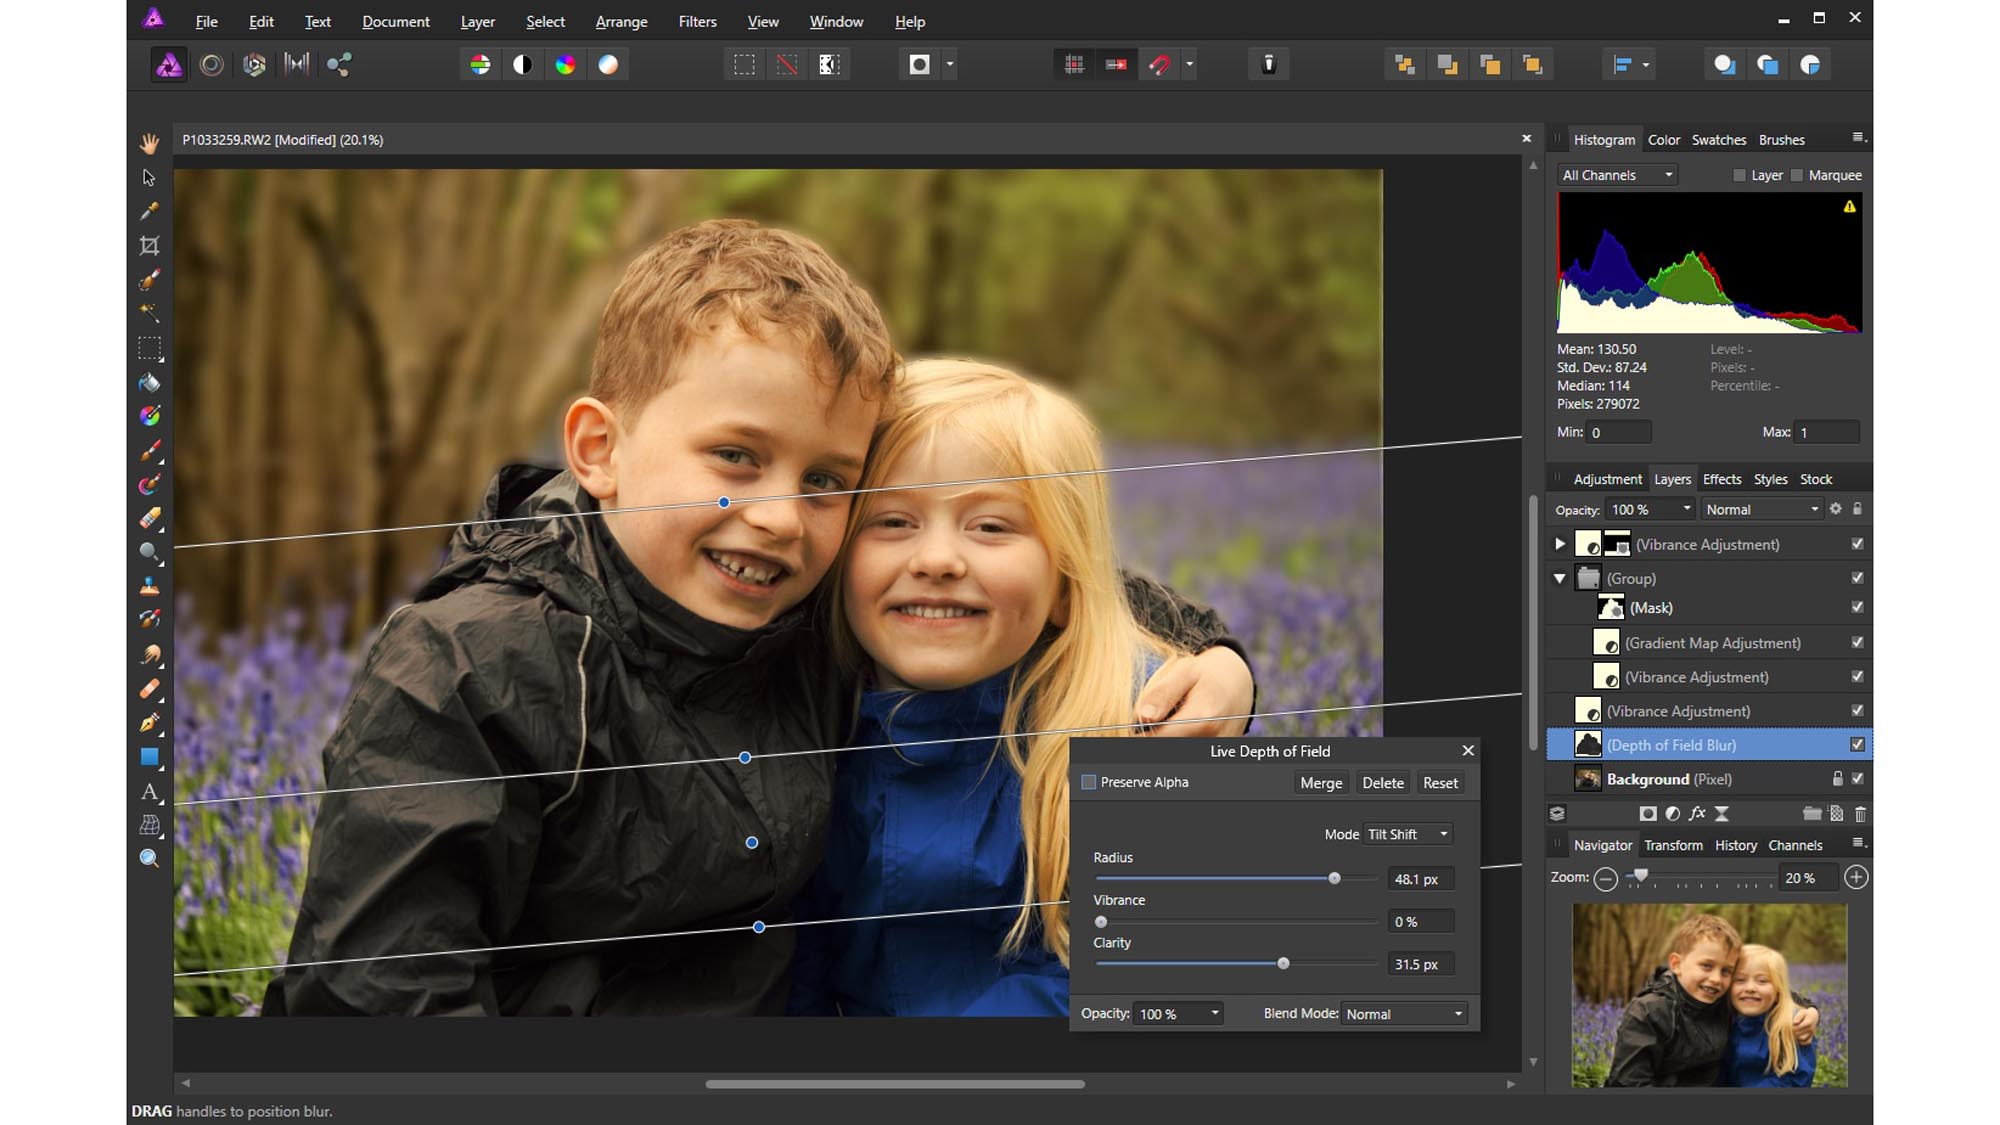 Photo! Editor - The perfect choice to edit and improve How to be a professional photo editor